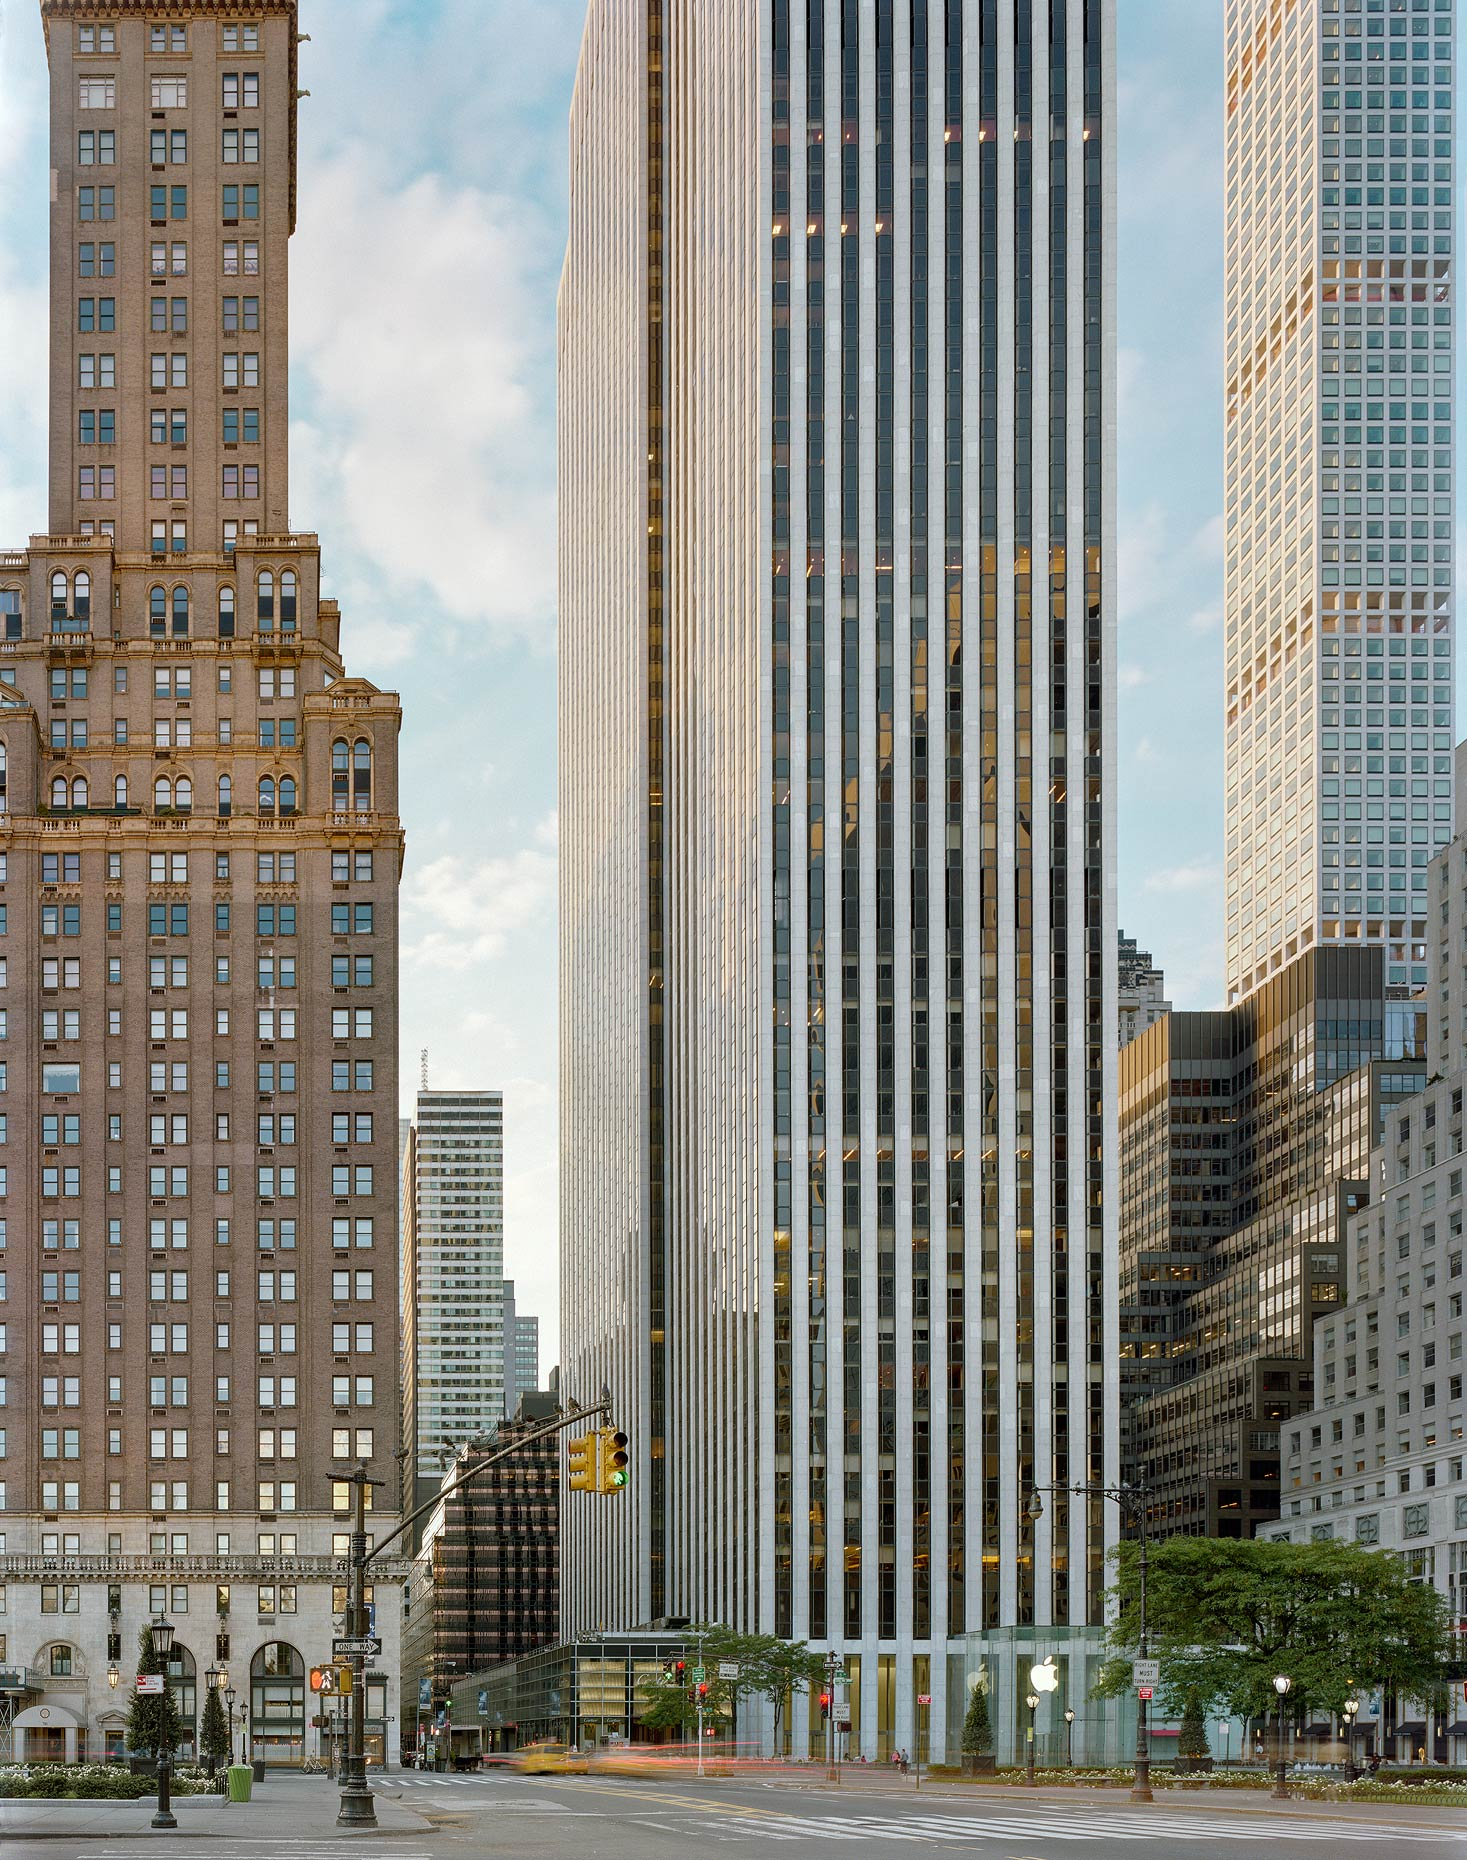 General Motors Building, 767 Fifth Avenue, Manhattan, New York City, 2017